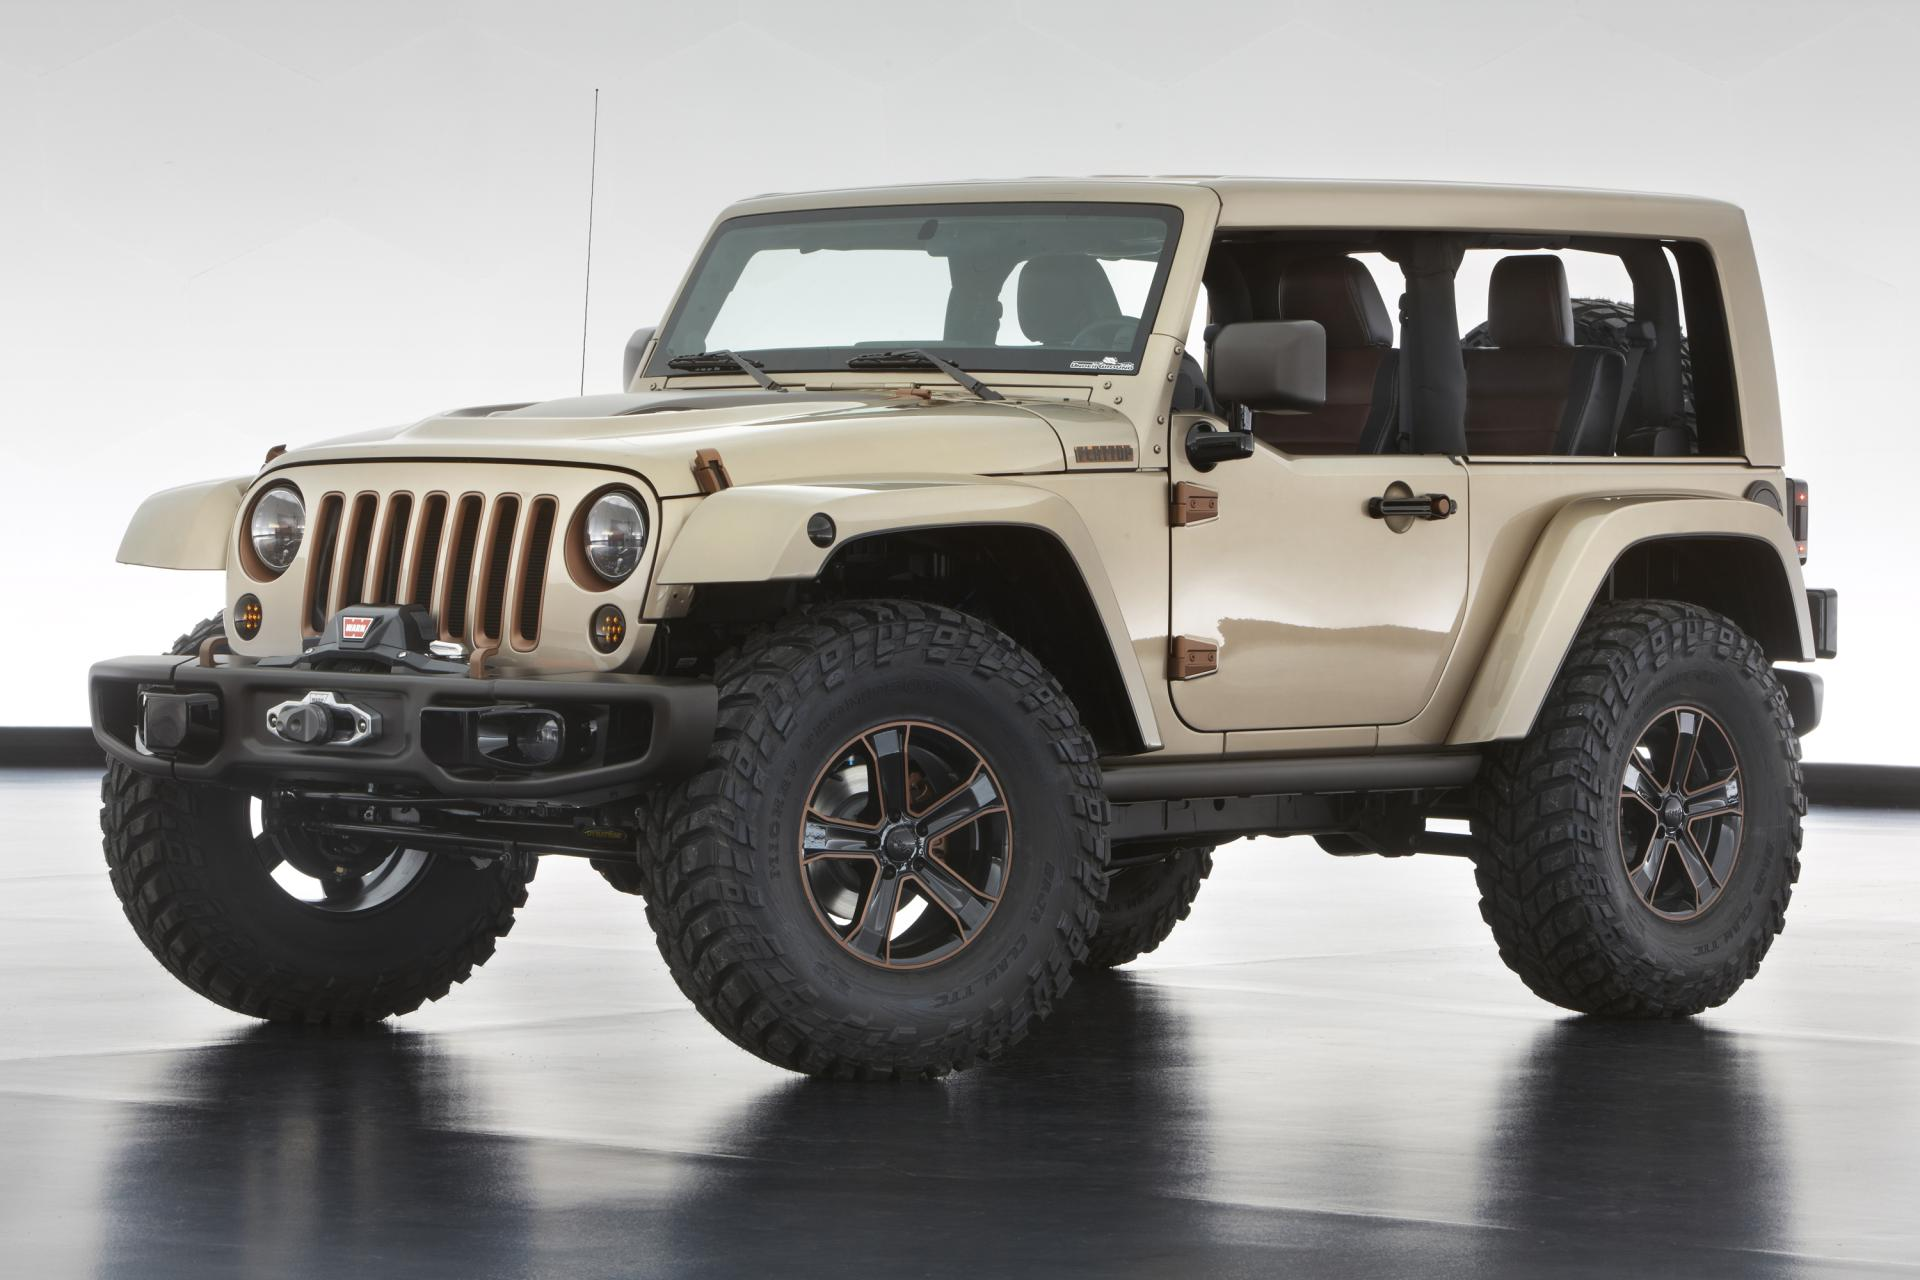 Free photo: army jeep old, off-road, transport free download.